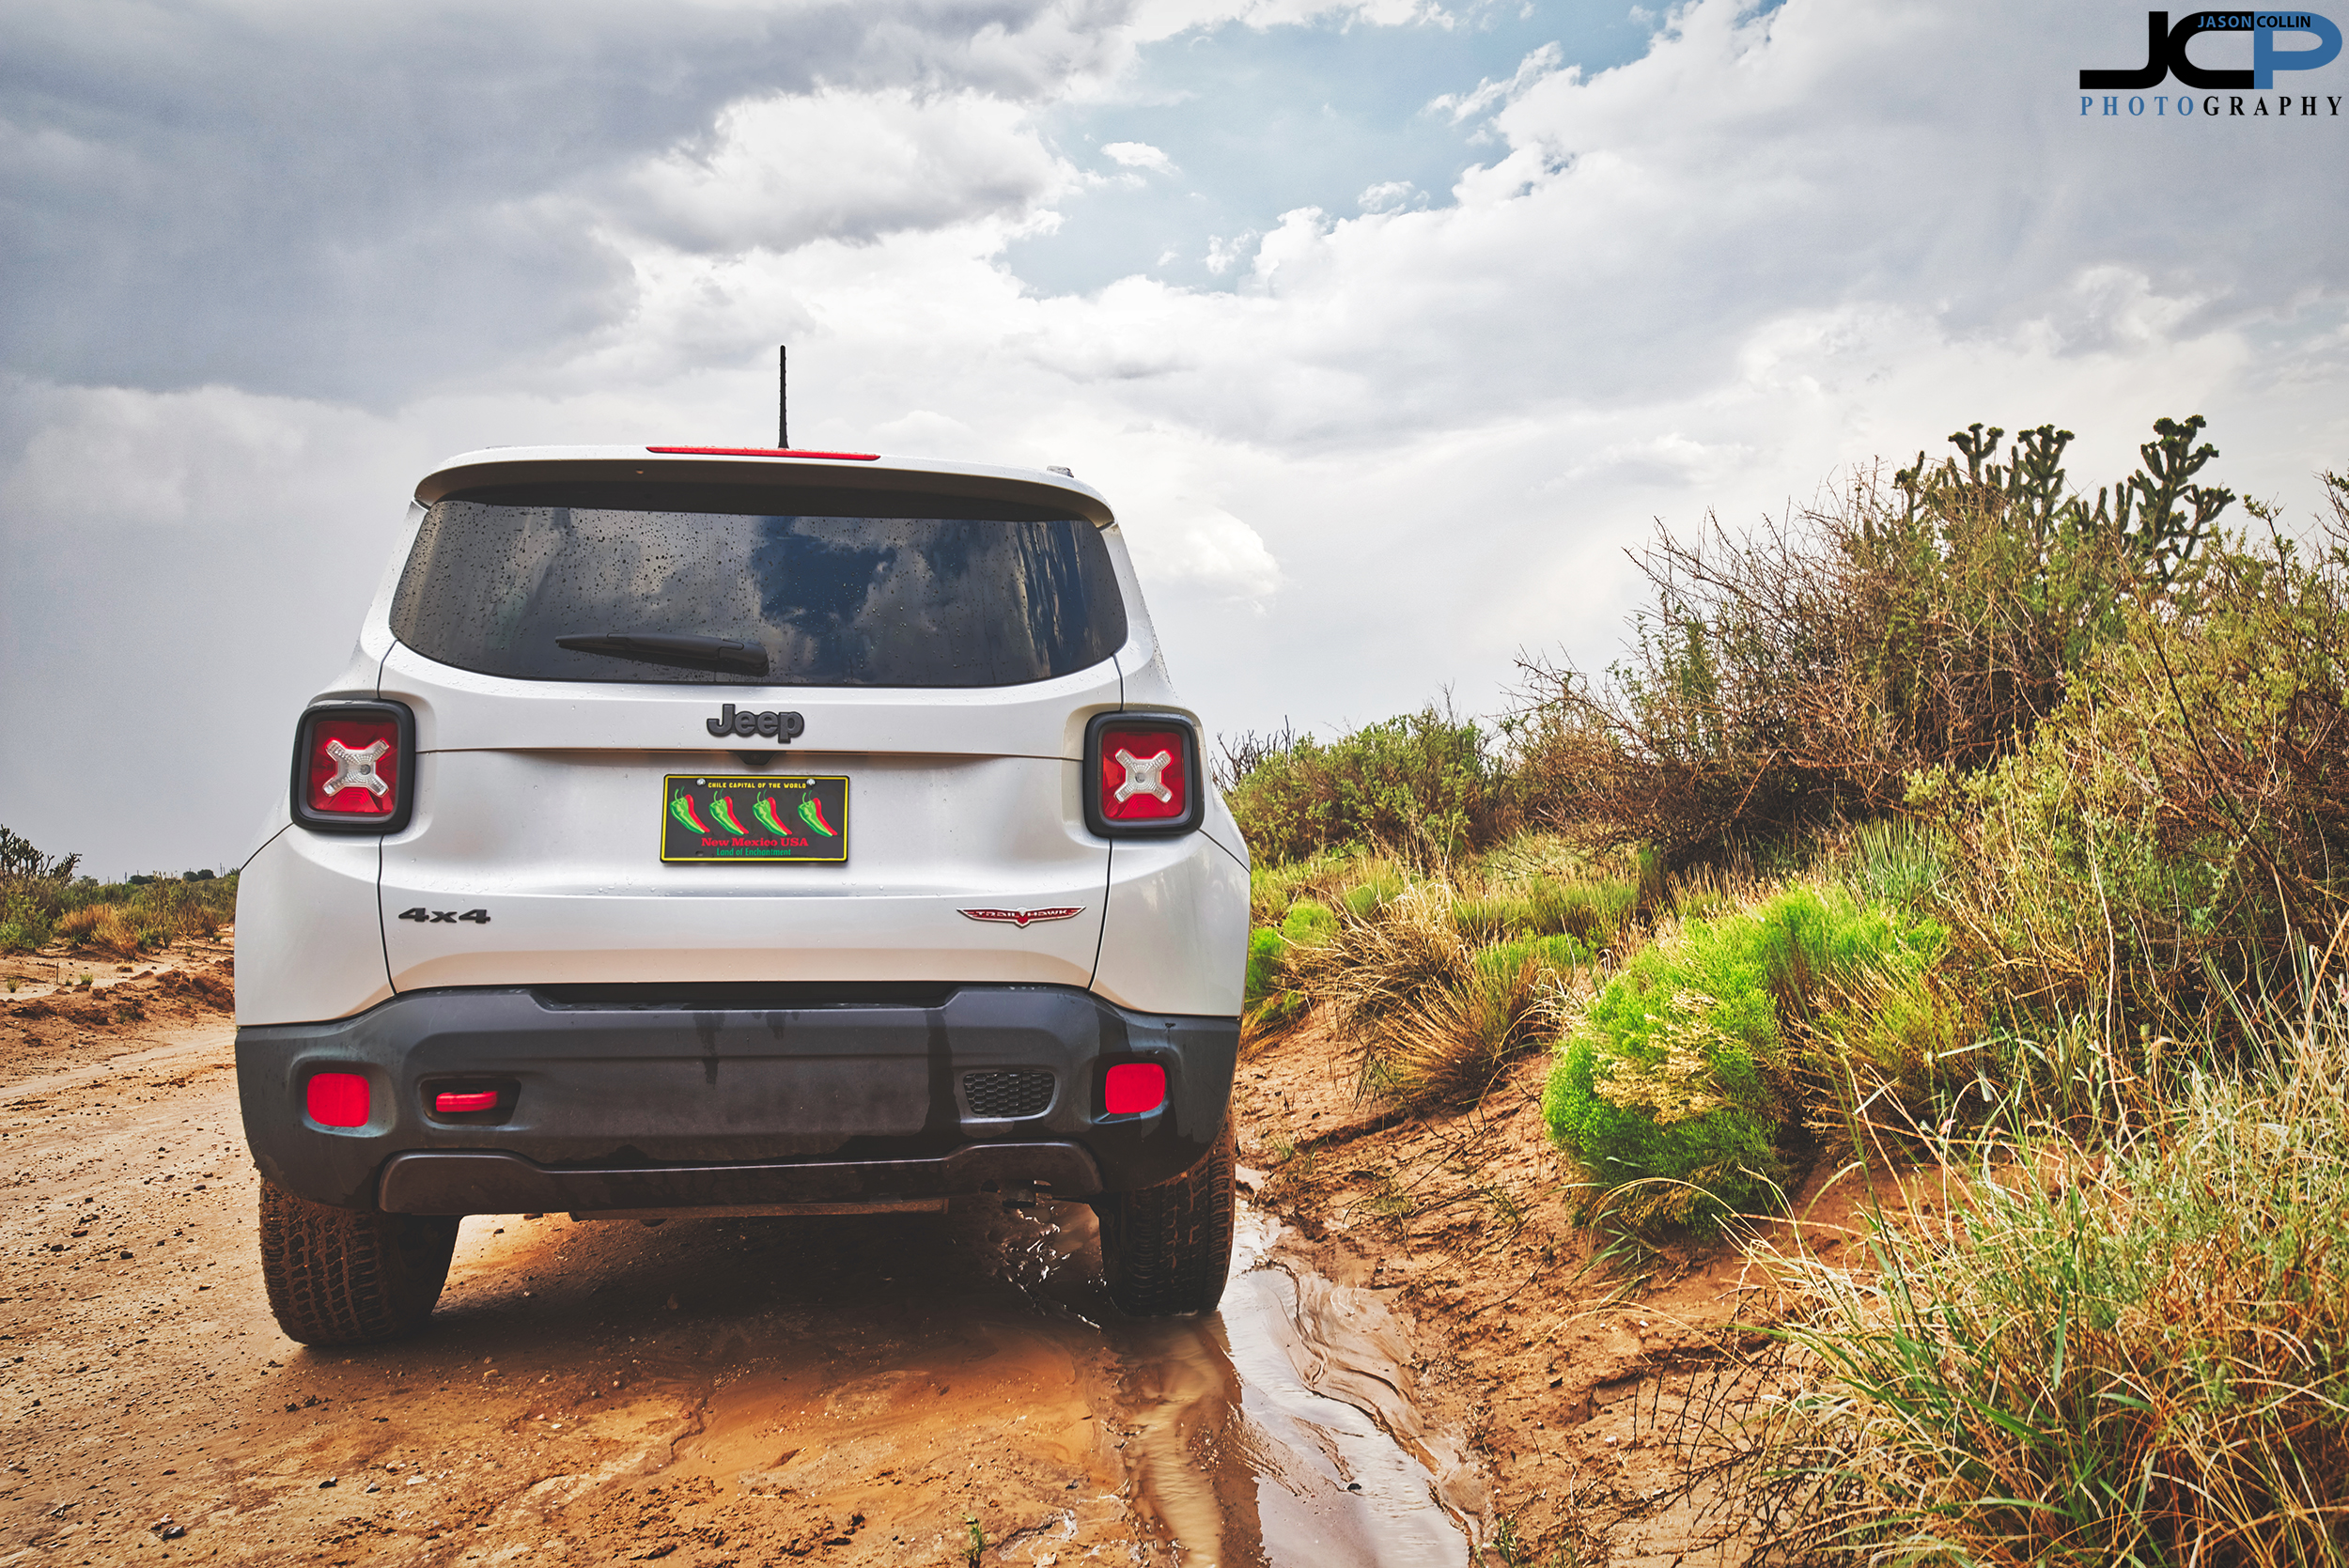 My Jeep Renegade Trailhawk in rural Rio Rancho, New Mexico offroad after a heavy thunderstorm passed by - Nikon D750 with Tamron 15-30mm f/2.8 SP lens tripod mounted 5-bracket HDR processed in Aurora HDR 2018